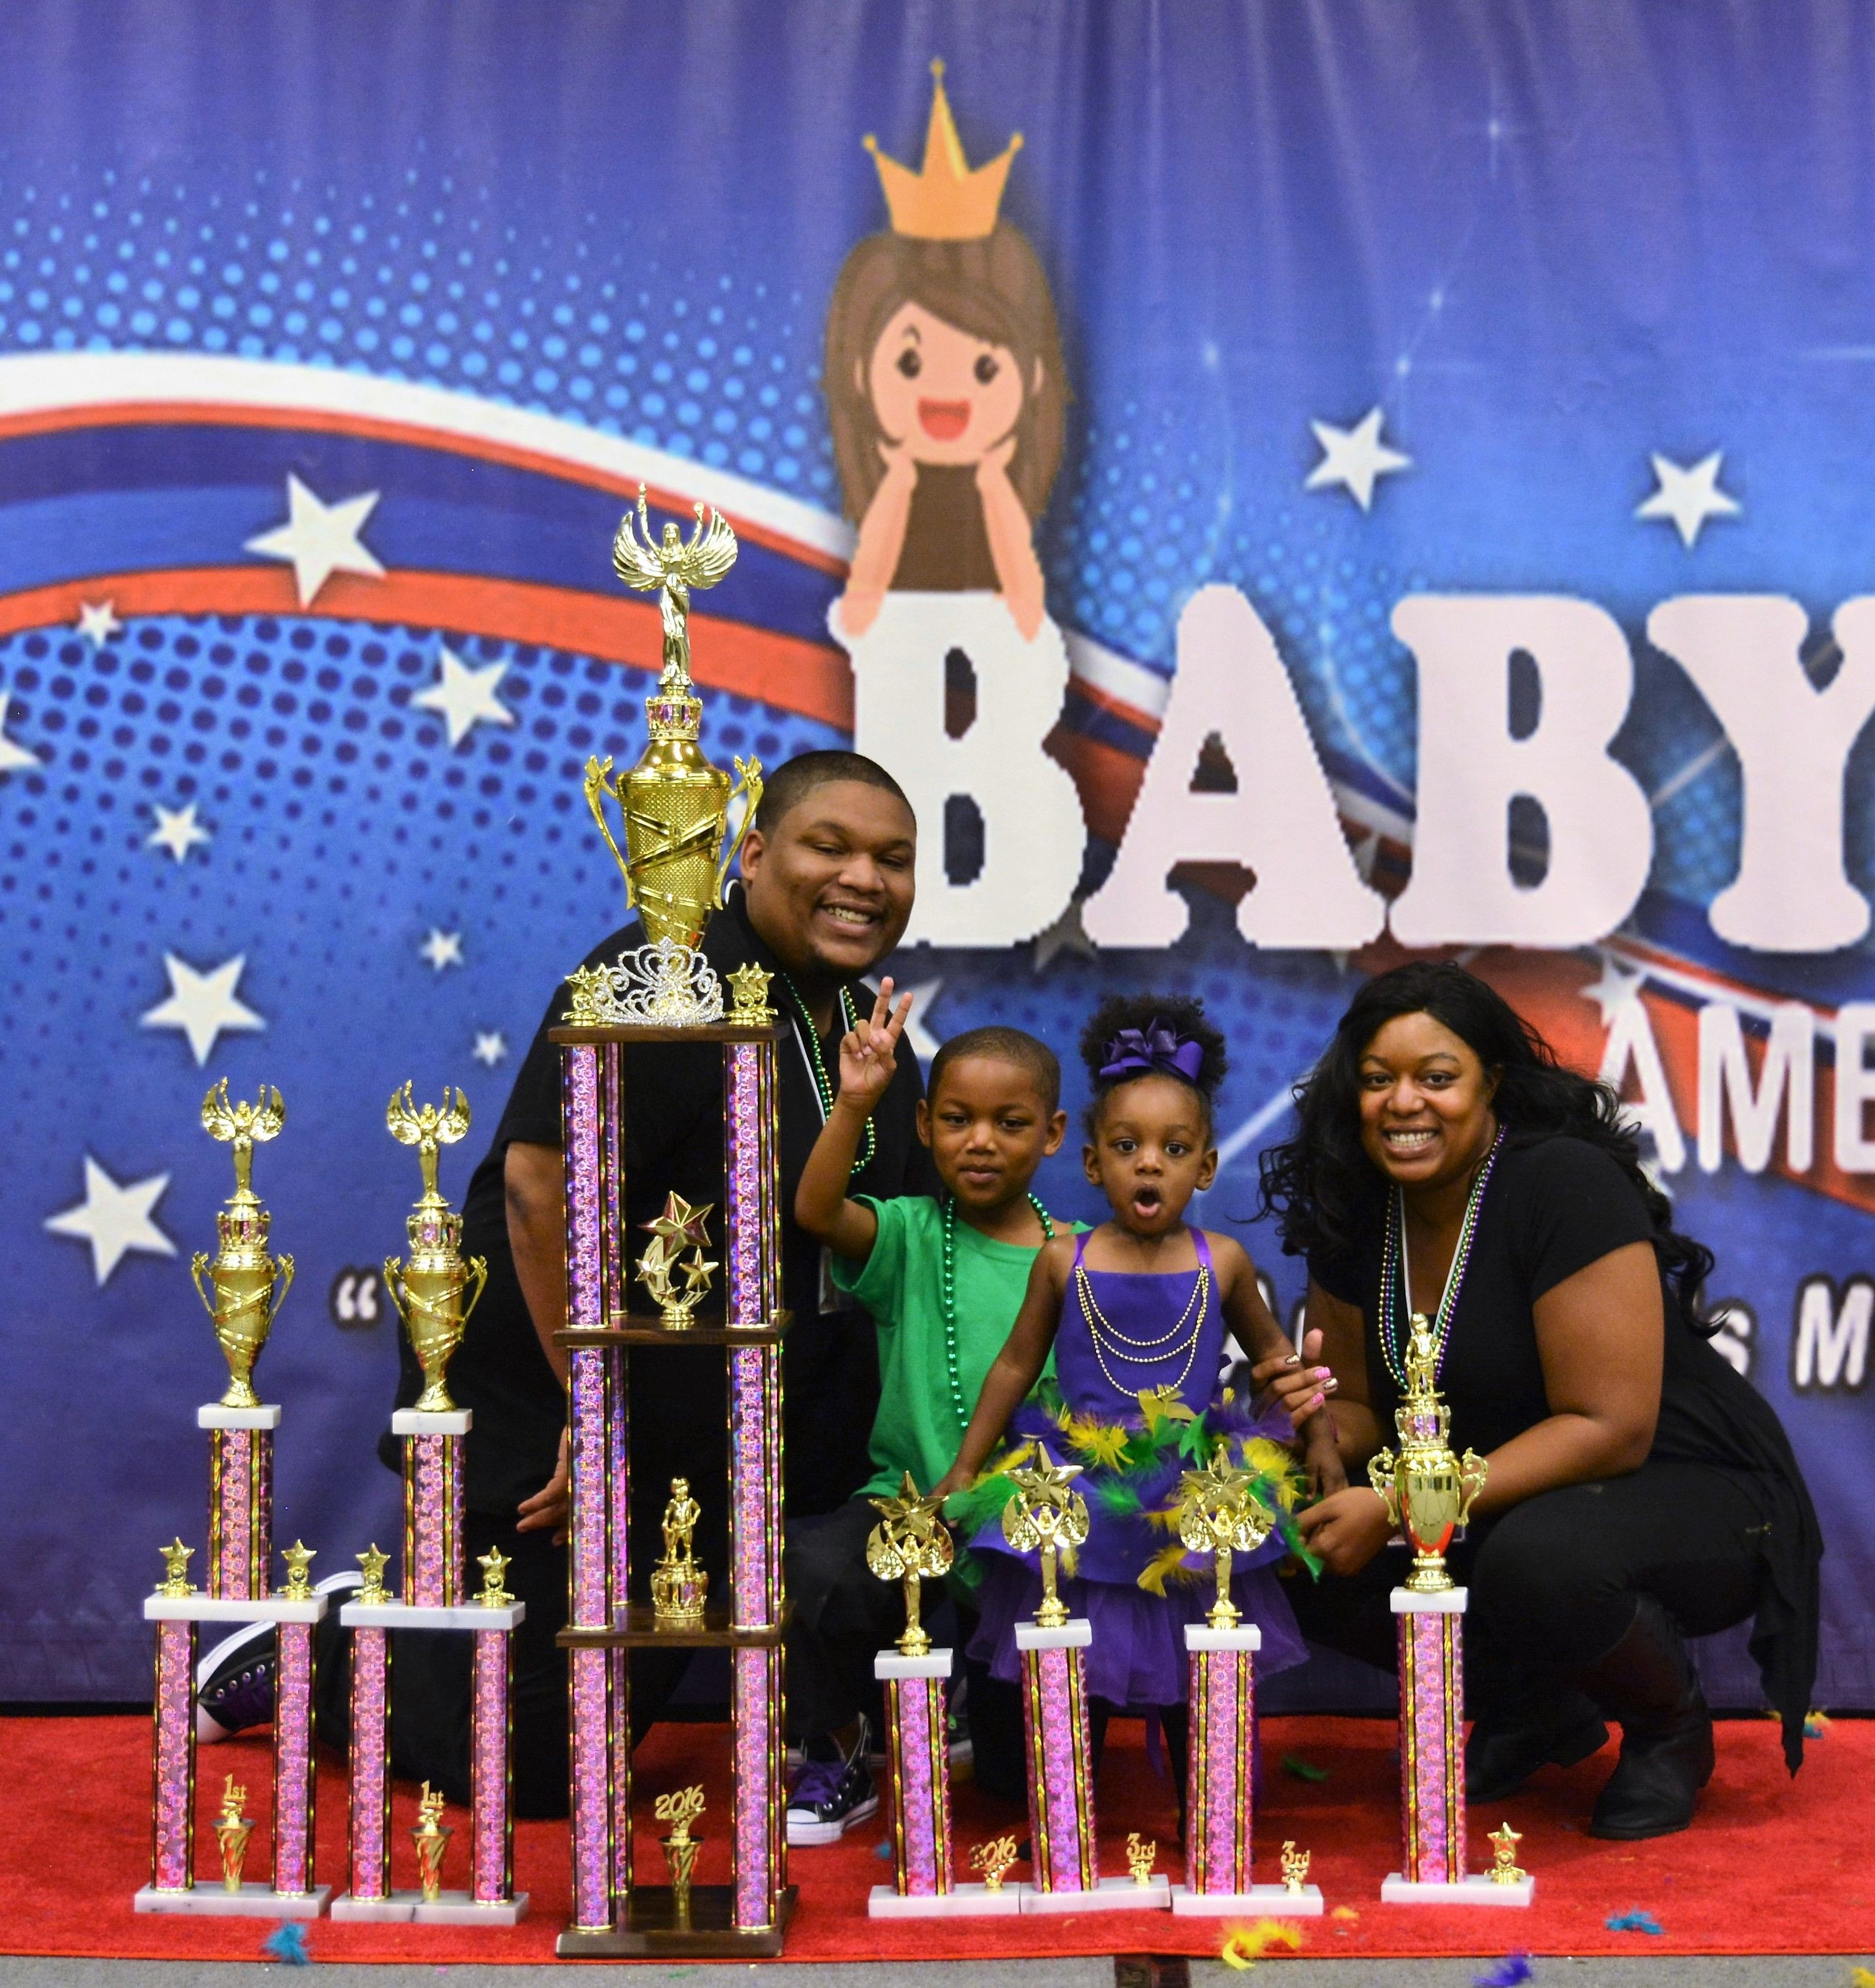 BABY MISS OHIO 2016 JANIYA THOMAS